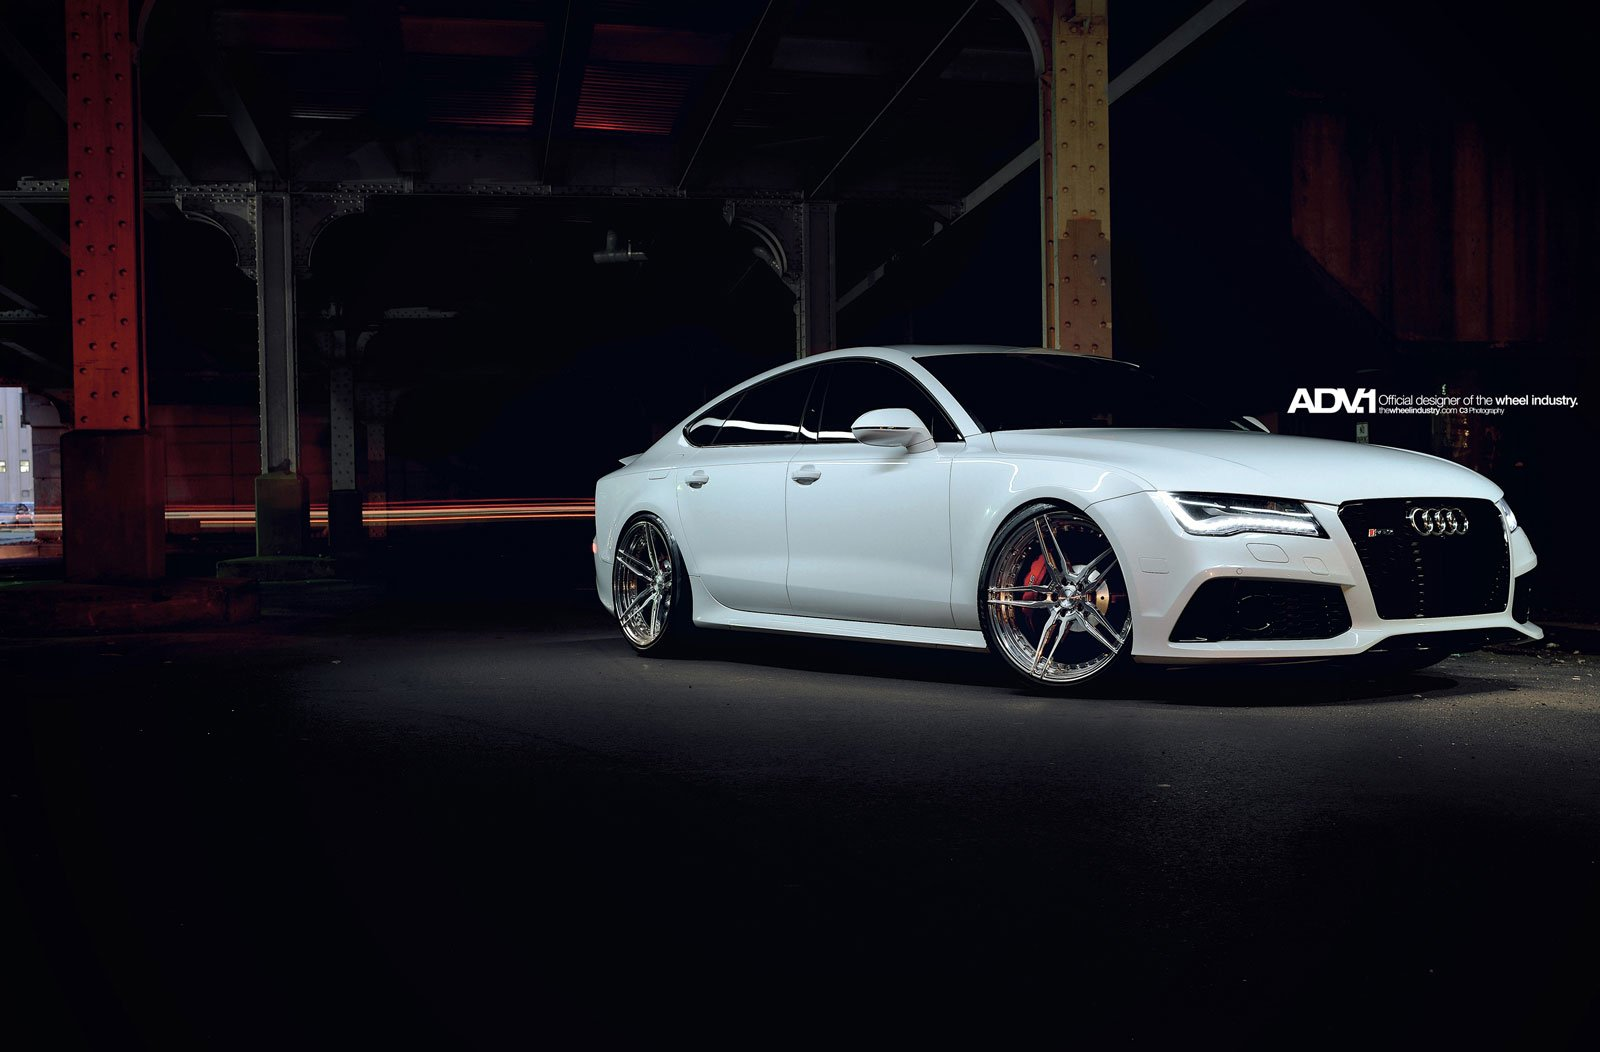 2014 Audi RS7 Red Wallpaper  Free iPhone Wallpapers